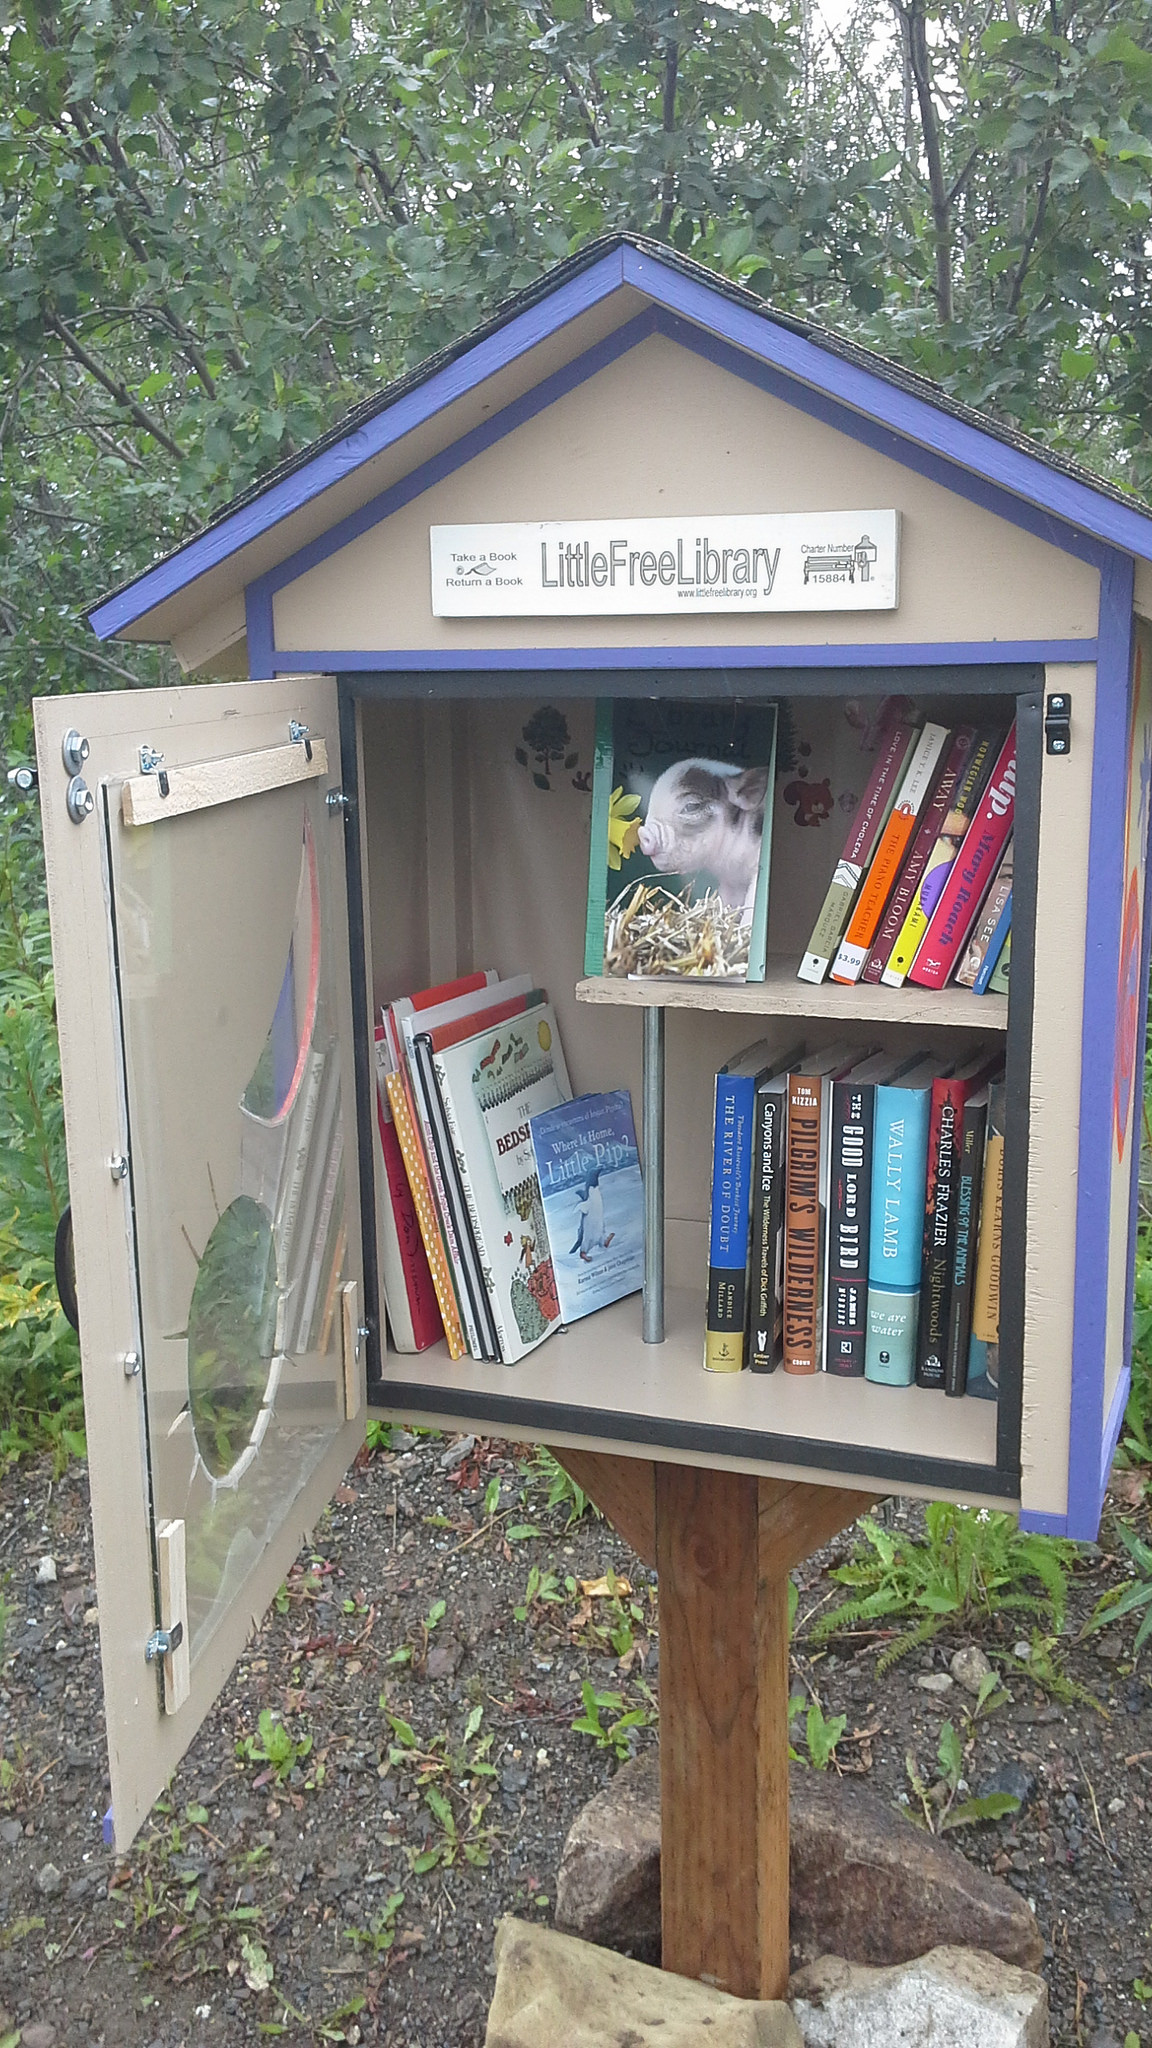 Little Free Library: 'De Boekenstal'